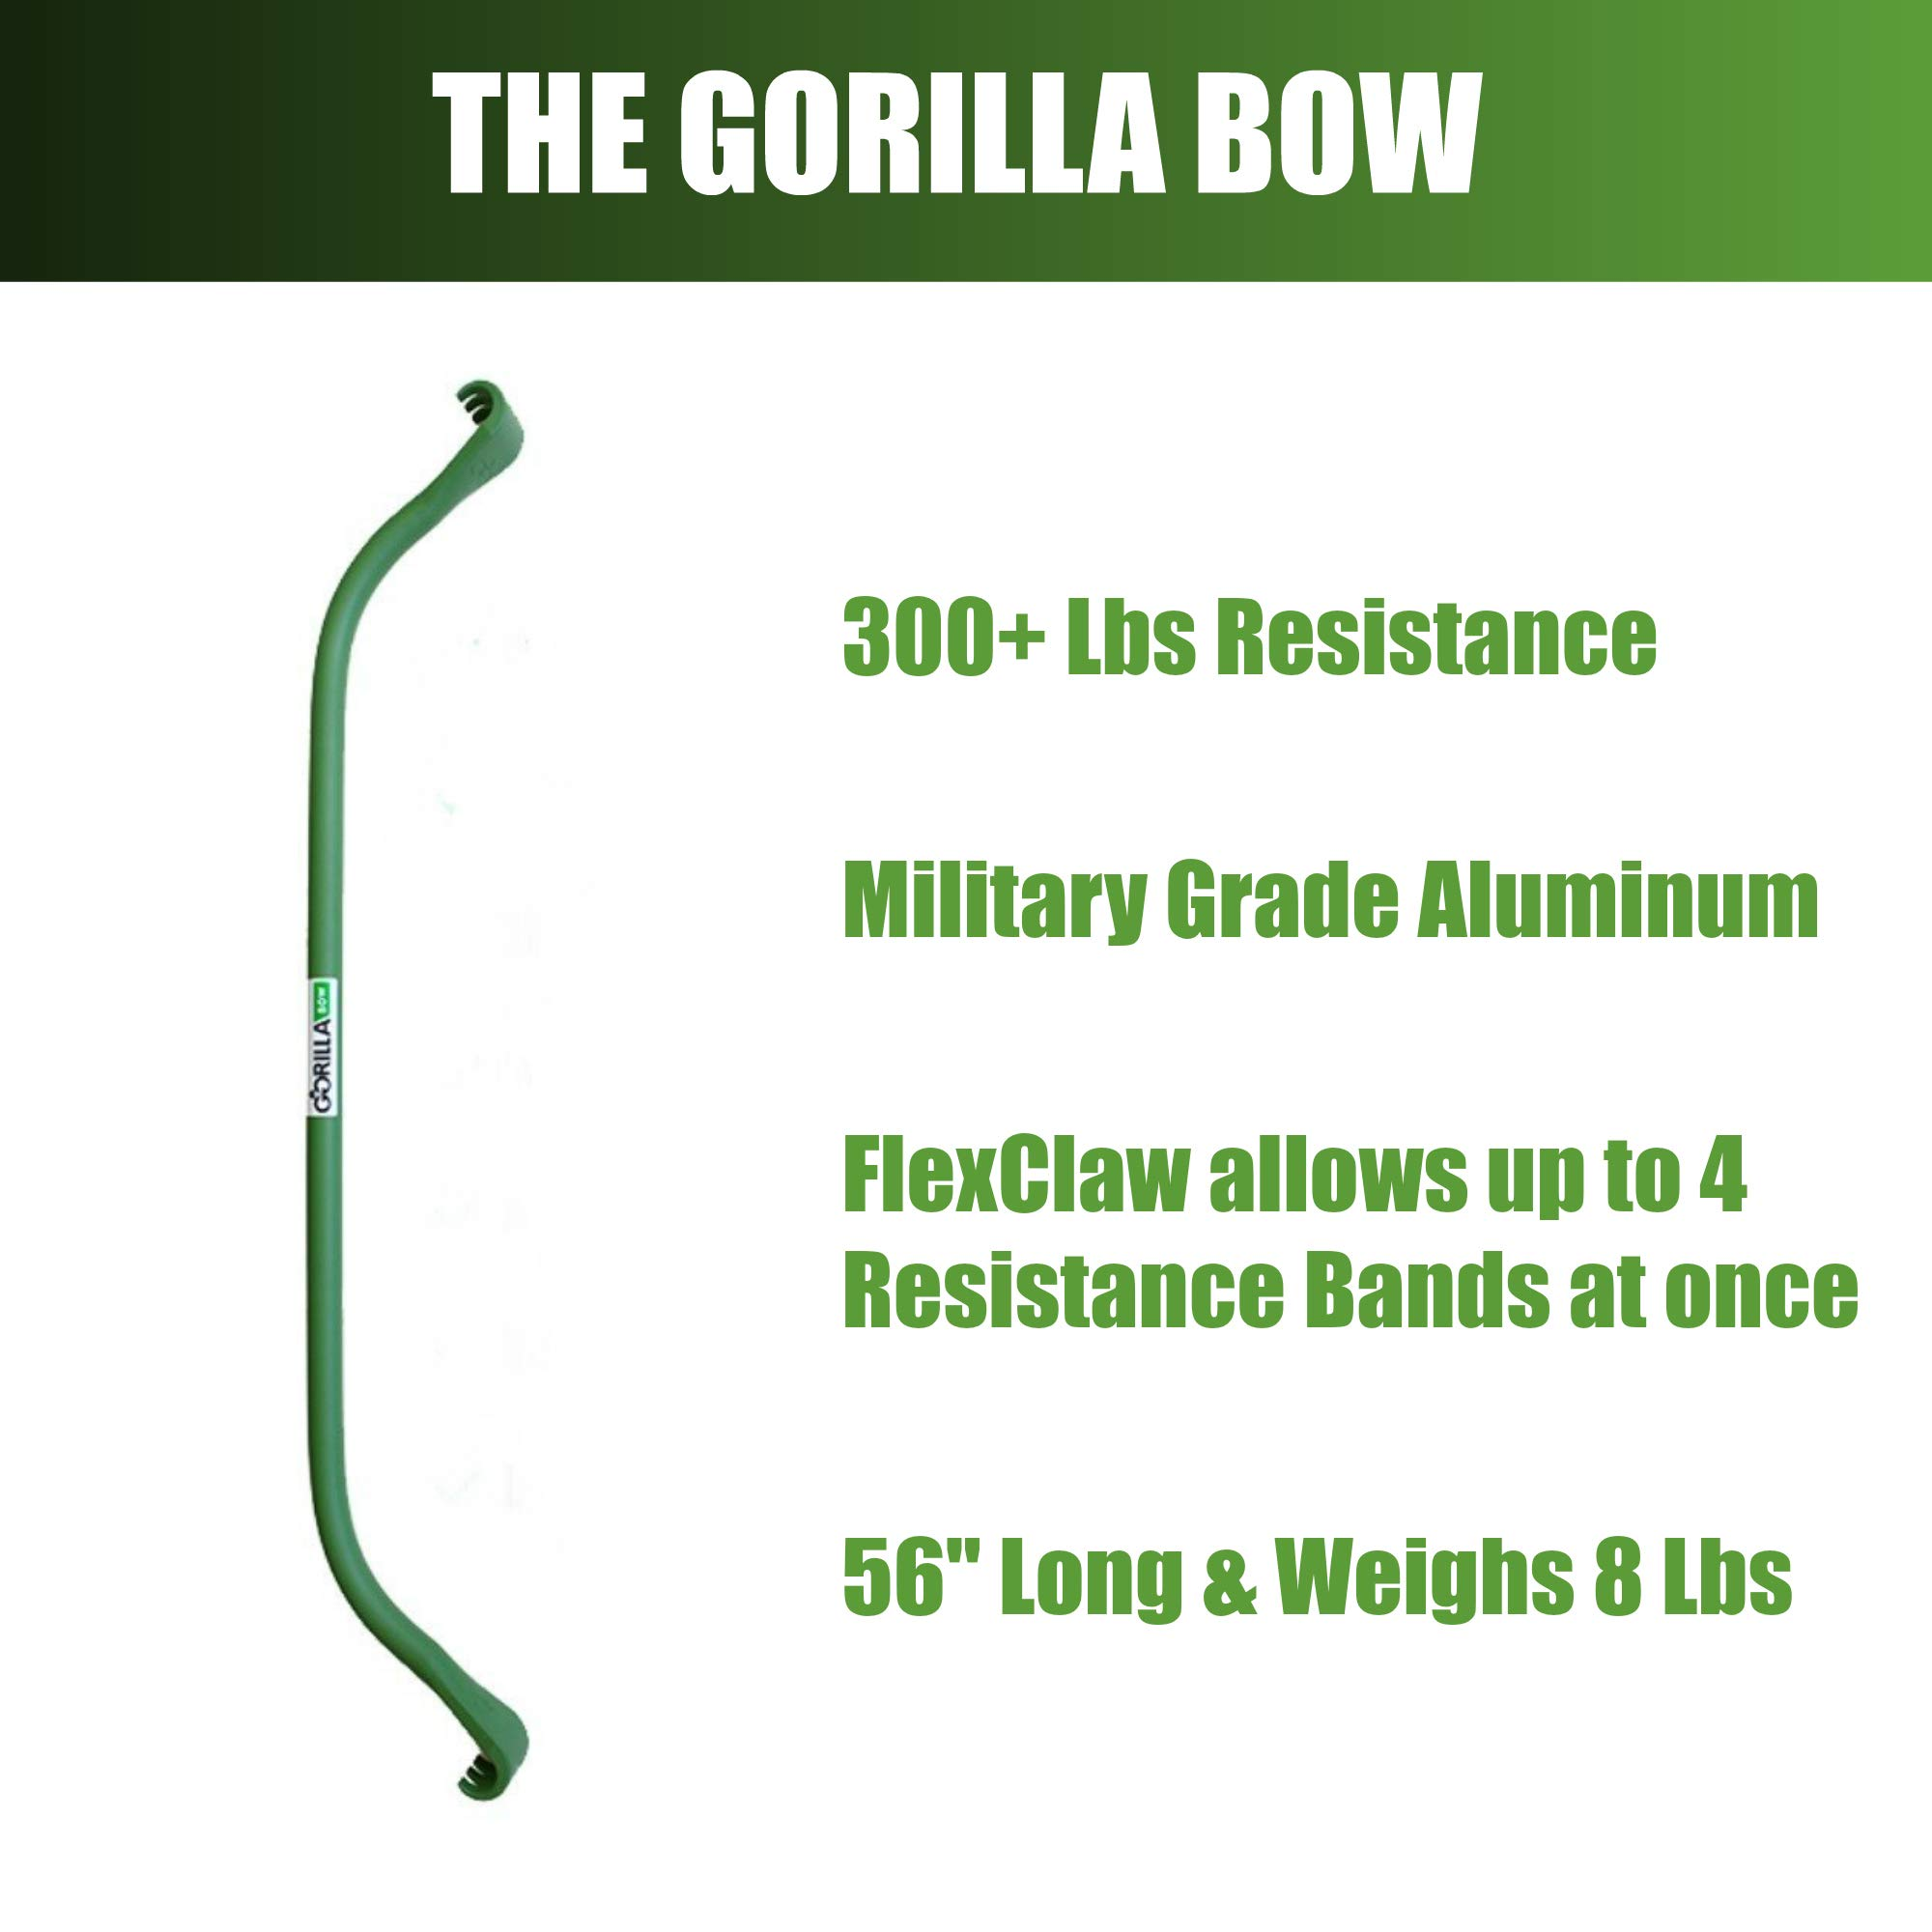 Gorilla Bow Portable Home Gym Resistance Band System | Weightlifting & HIIT Interval Training Kit | Full Body Workout Equipment (Green) by Gorilla Fitness (Image #5)